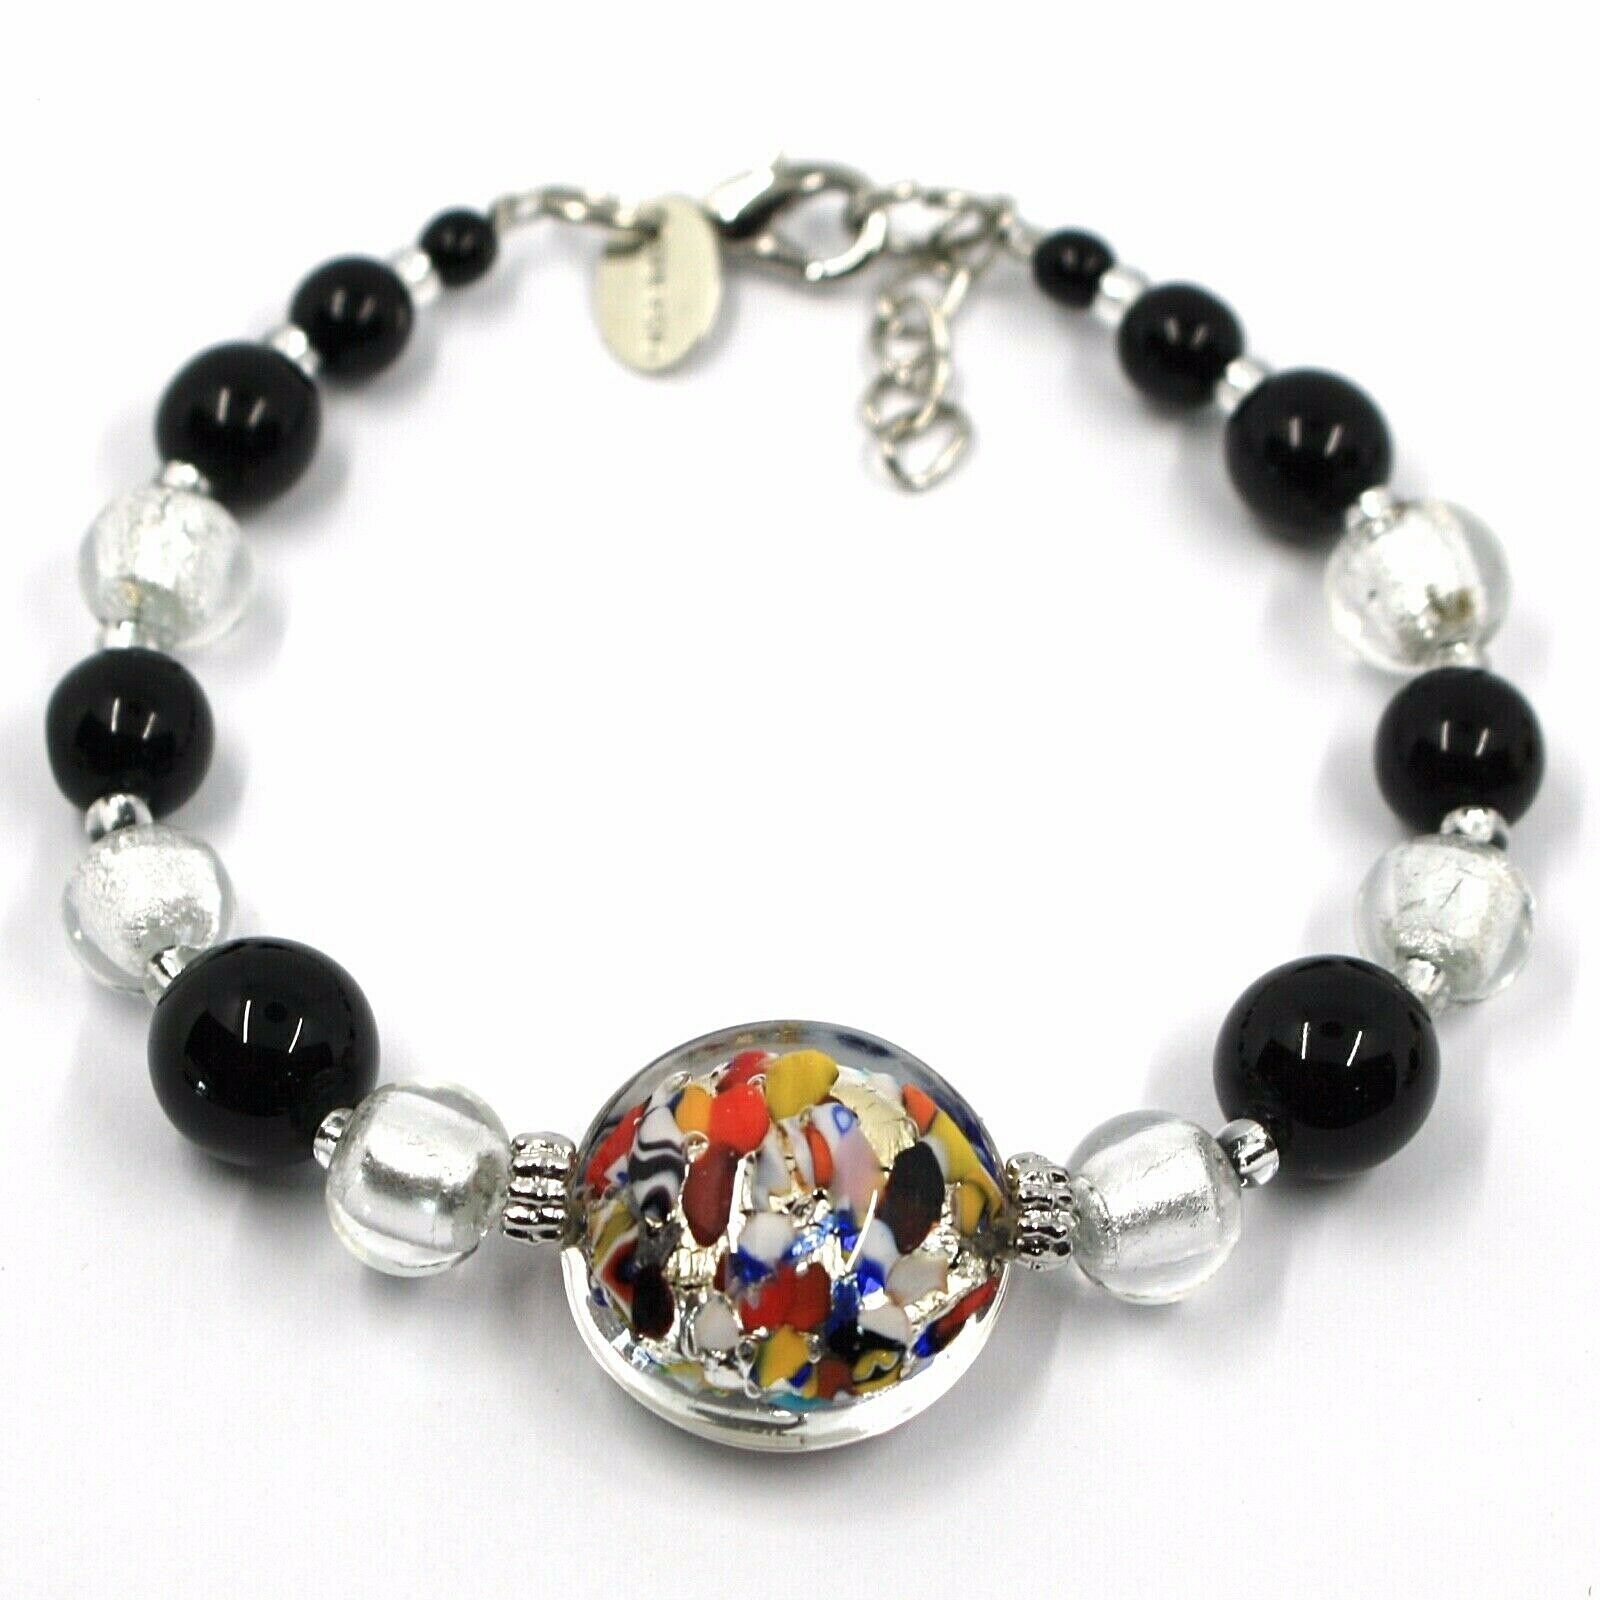 BRACELET MACULATE MULTI COLOR MURANO GLASS DISC, SILVER LEAF, MADE IN ITALY